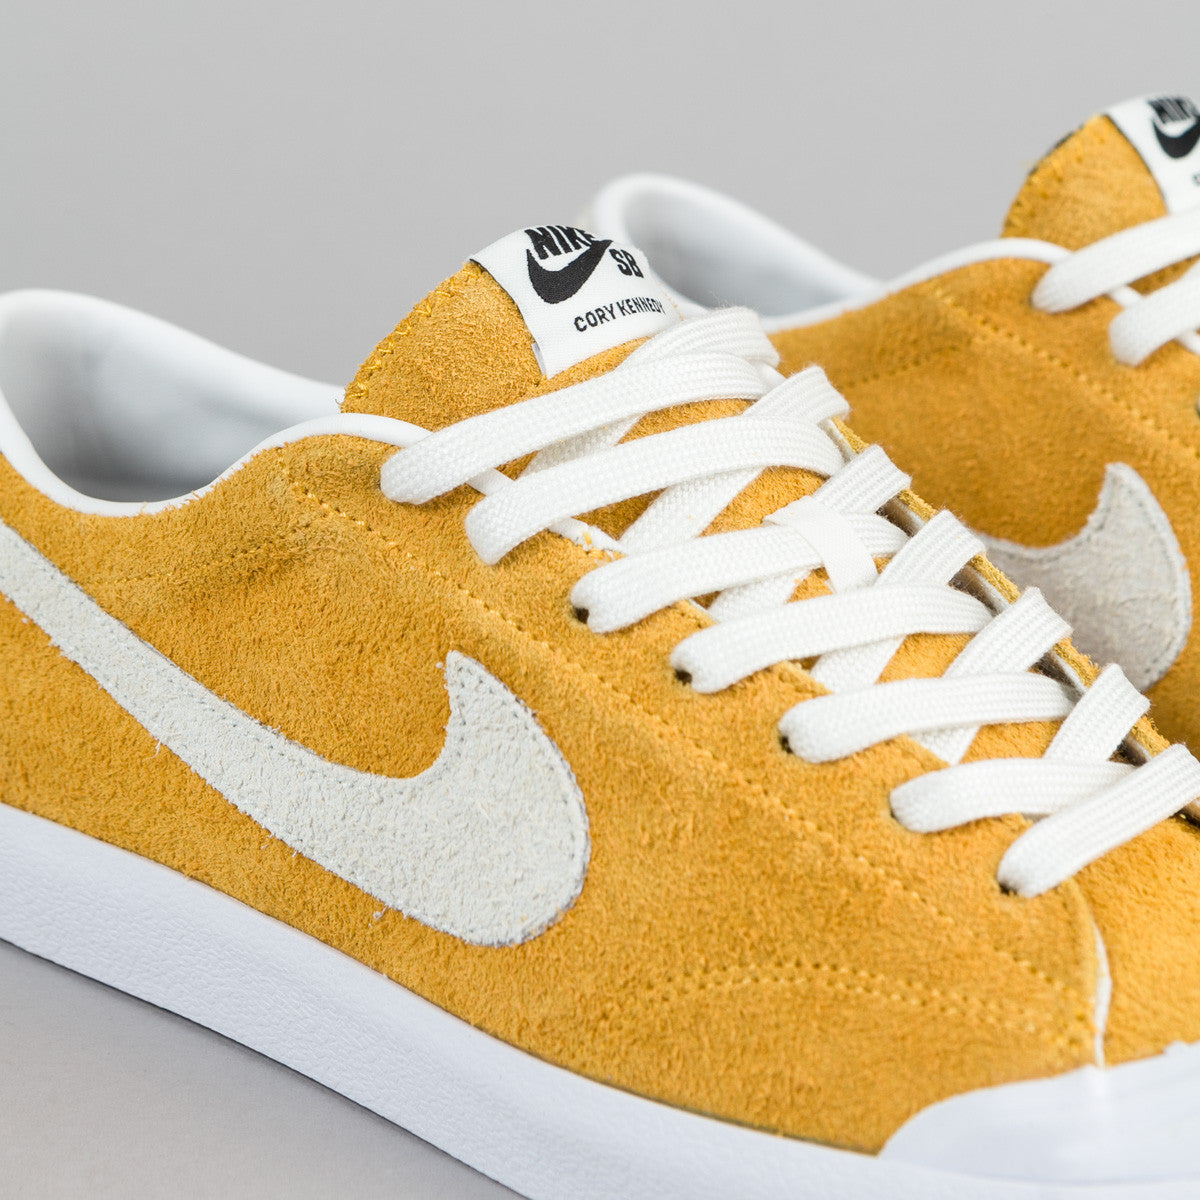 Nike SB Air Zoom All Court CK Shoes - University Gold / Summit White - Black